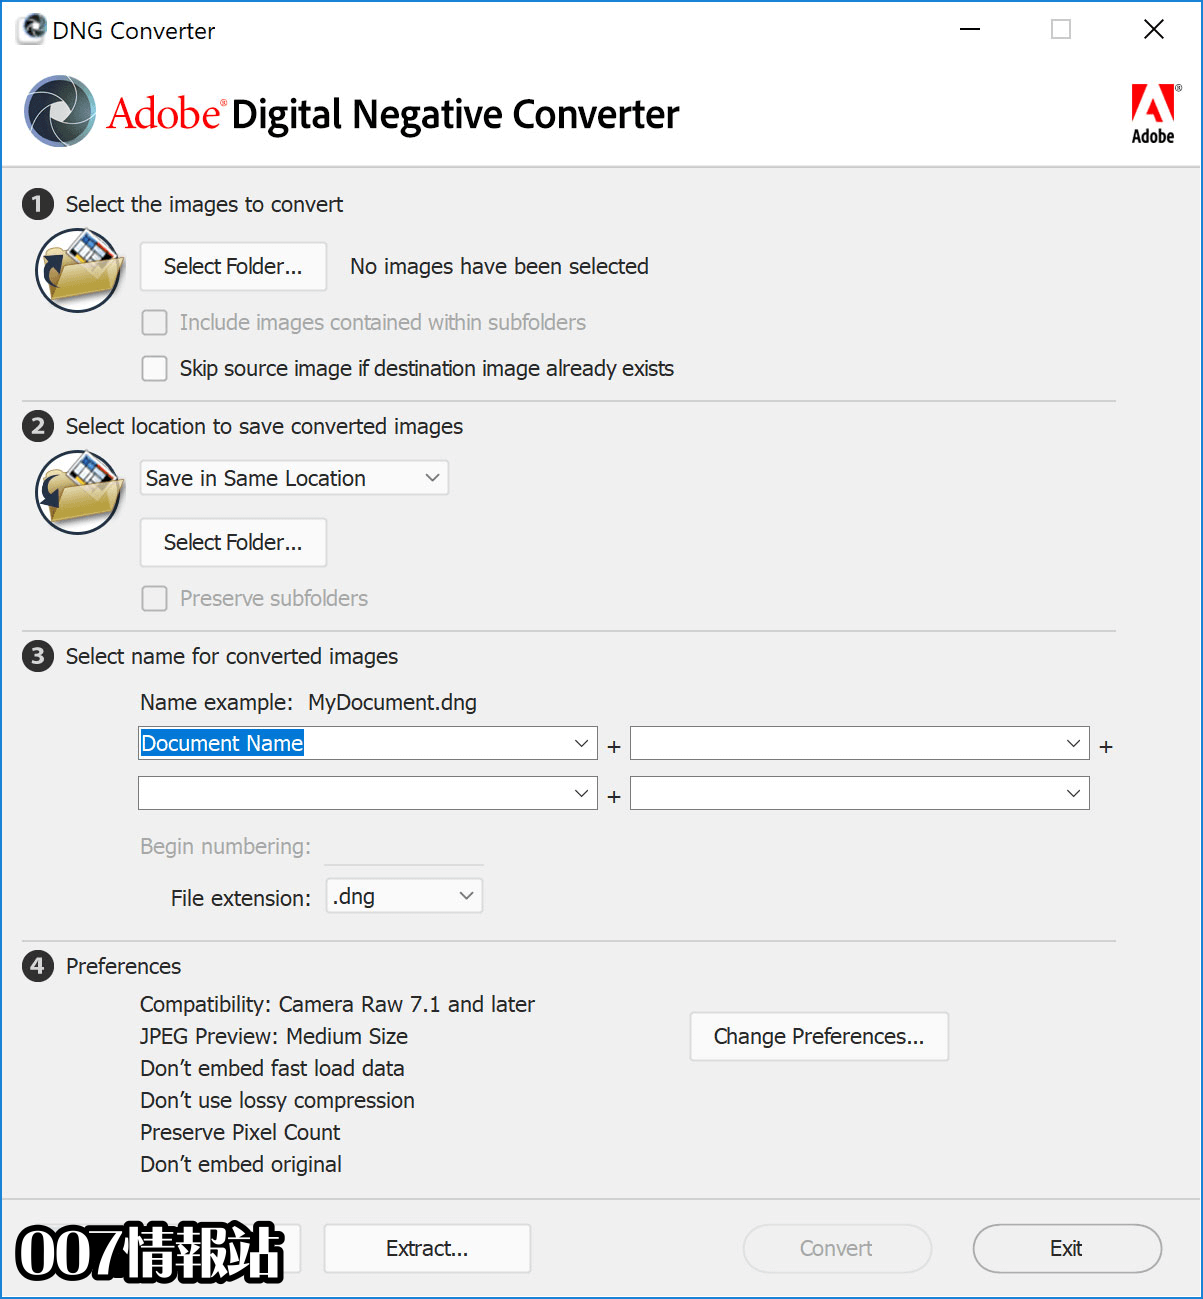 Adobe DNG Converter Screenshot 1